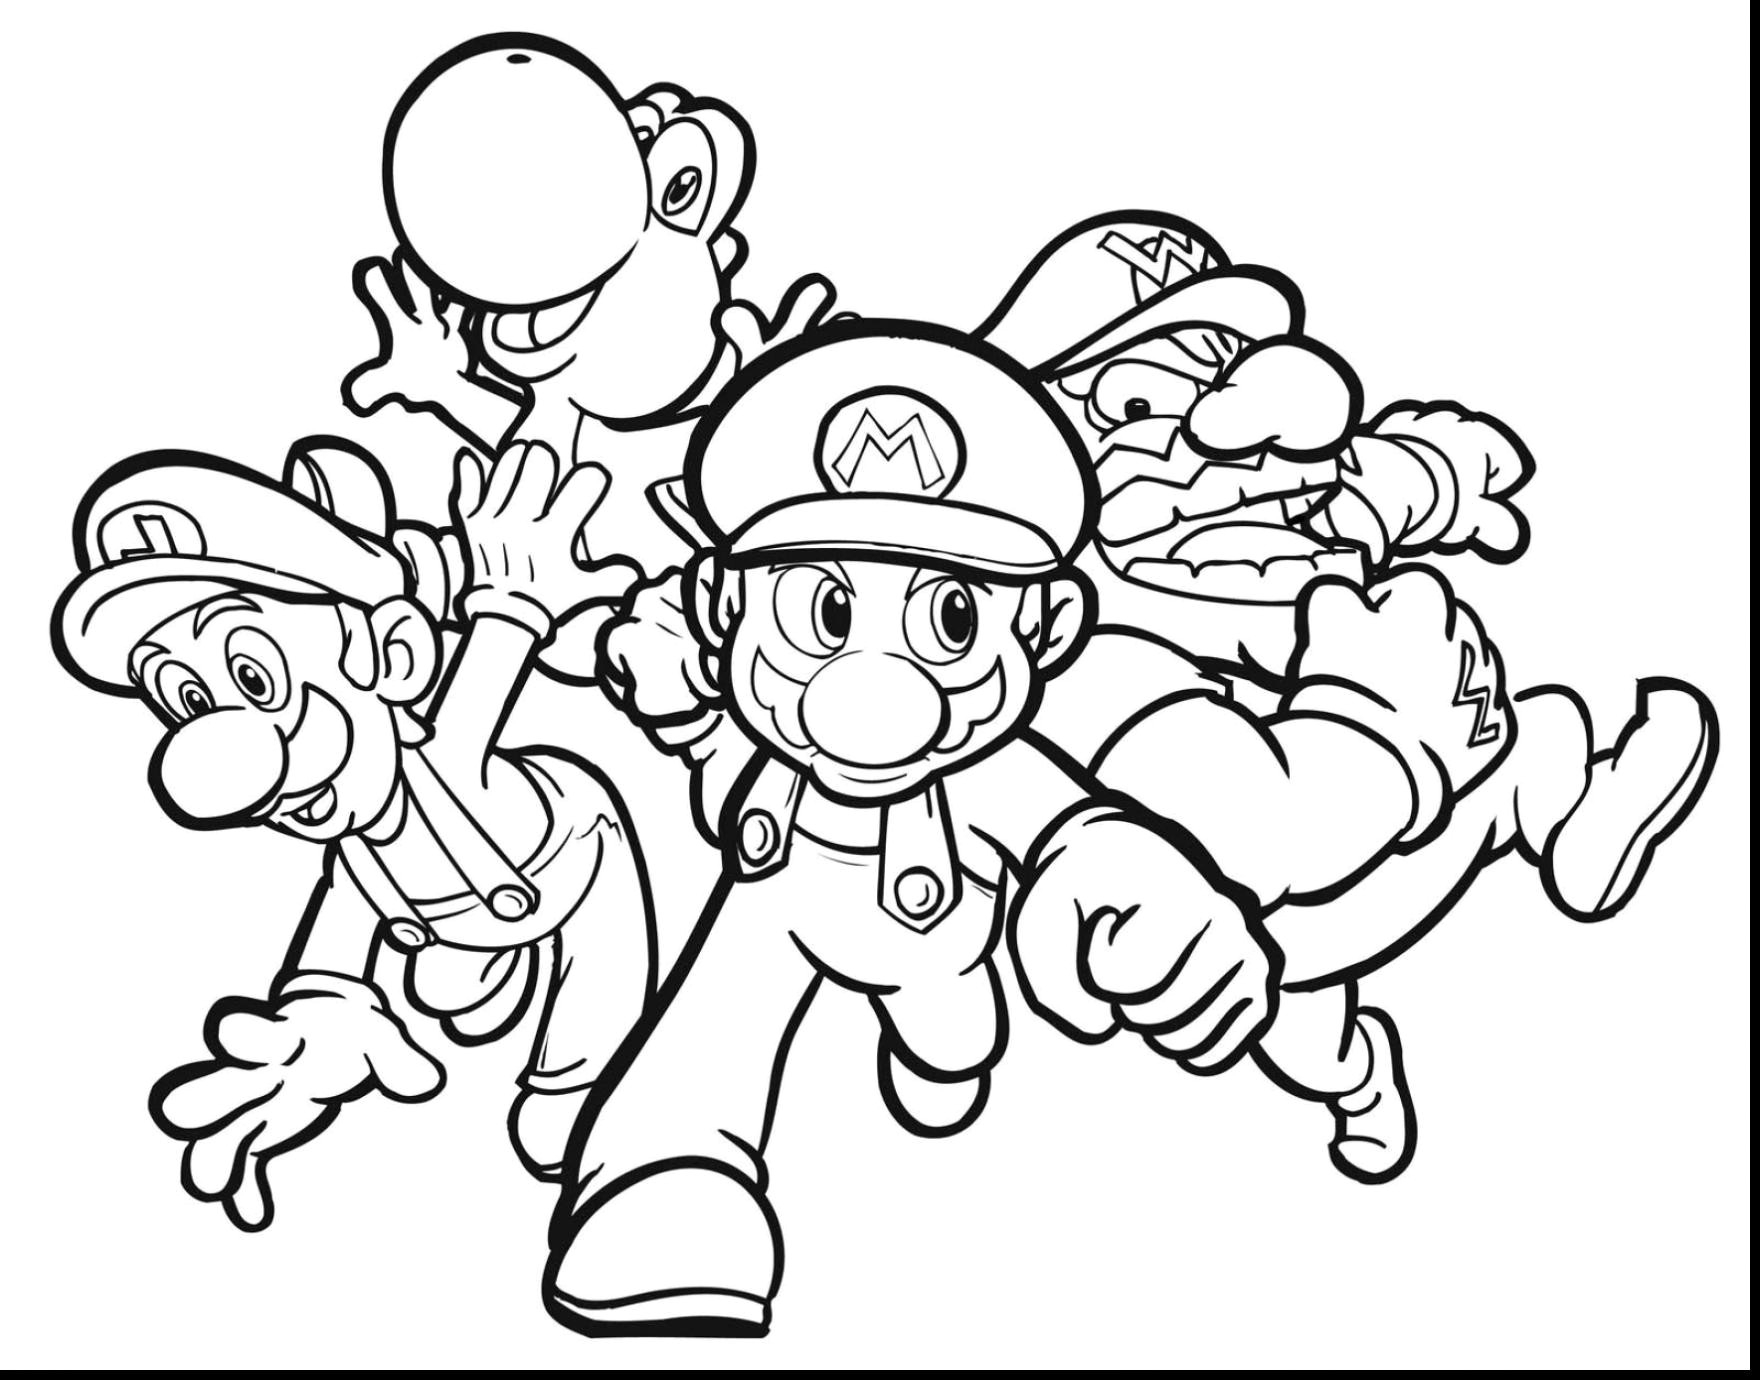 Peach From Mario Coloring Pages Coloring Book Ideas Mario Bros Coloring Pages Brothers Neuhne Me